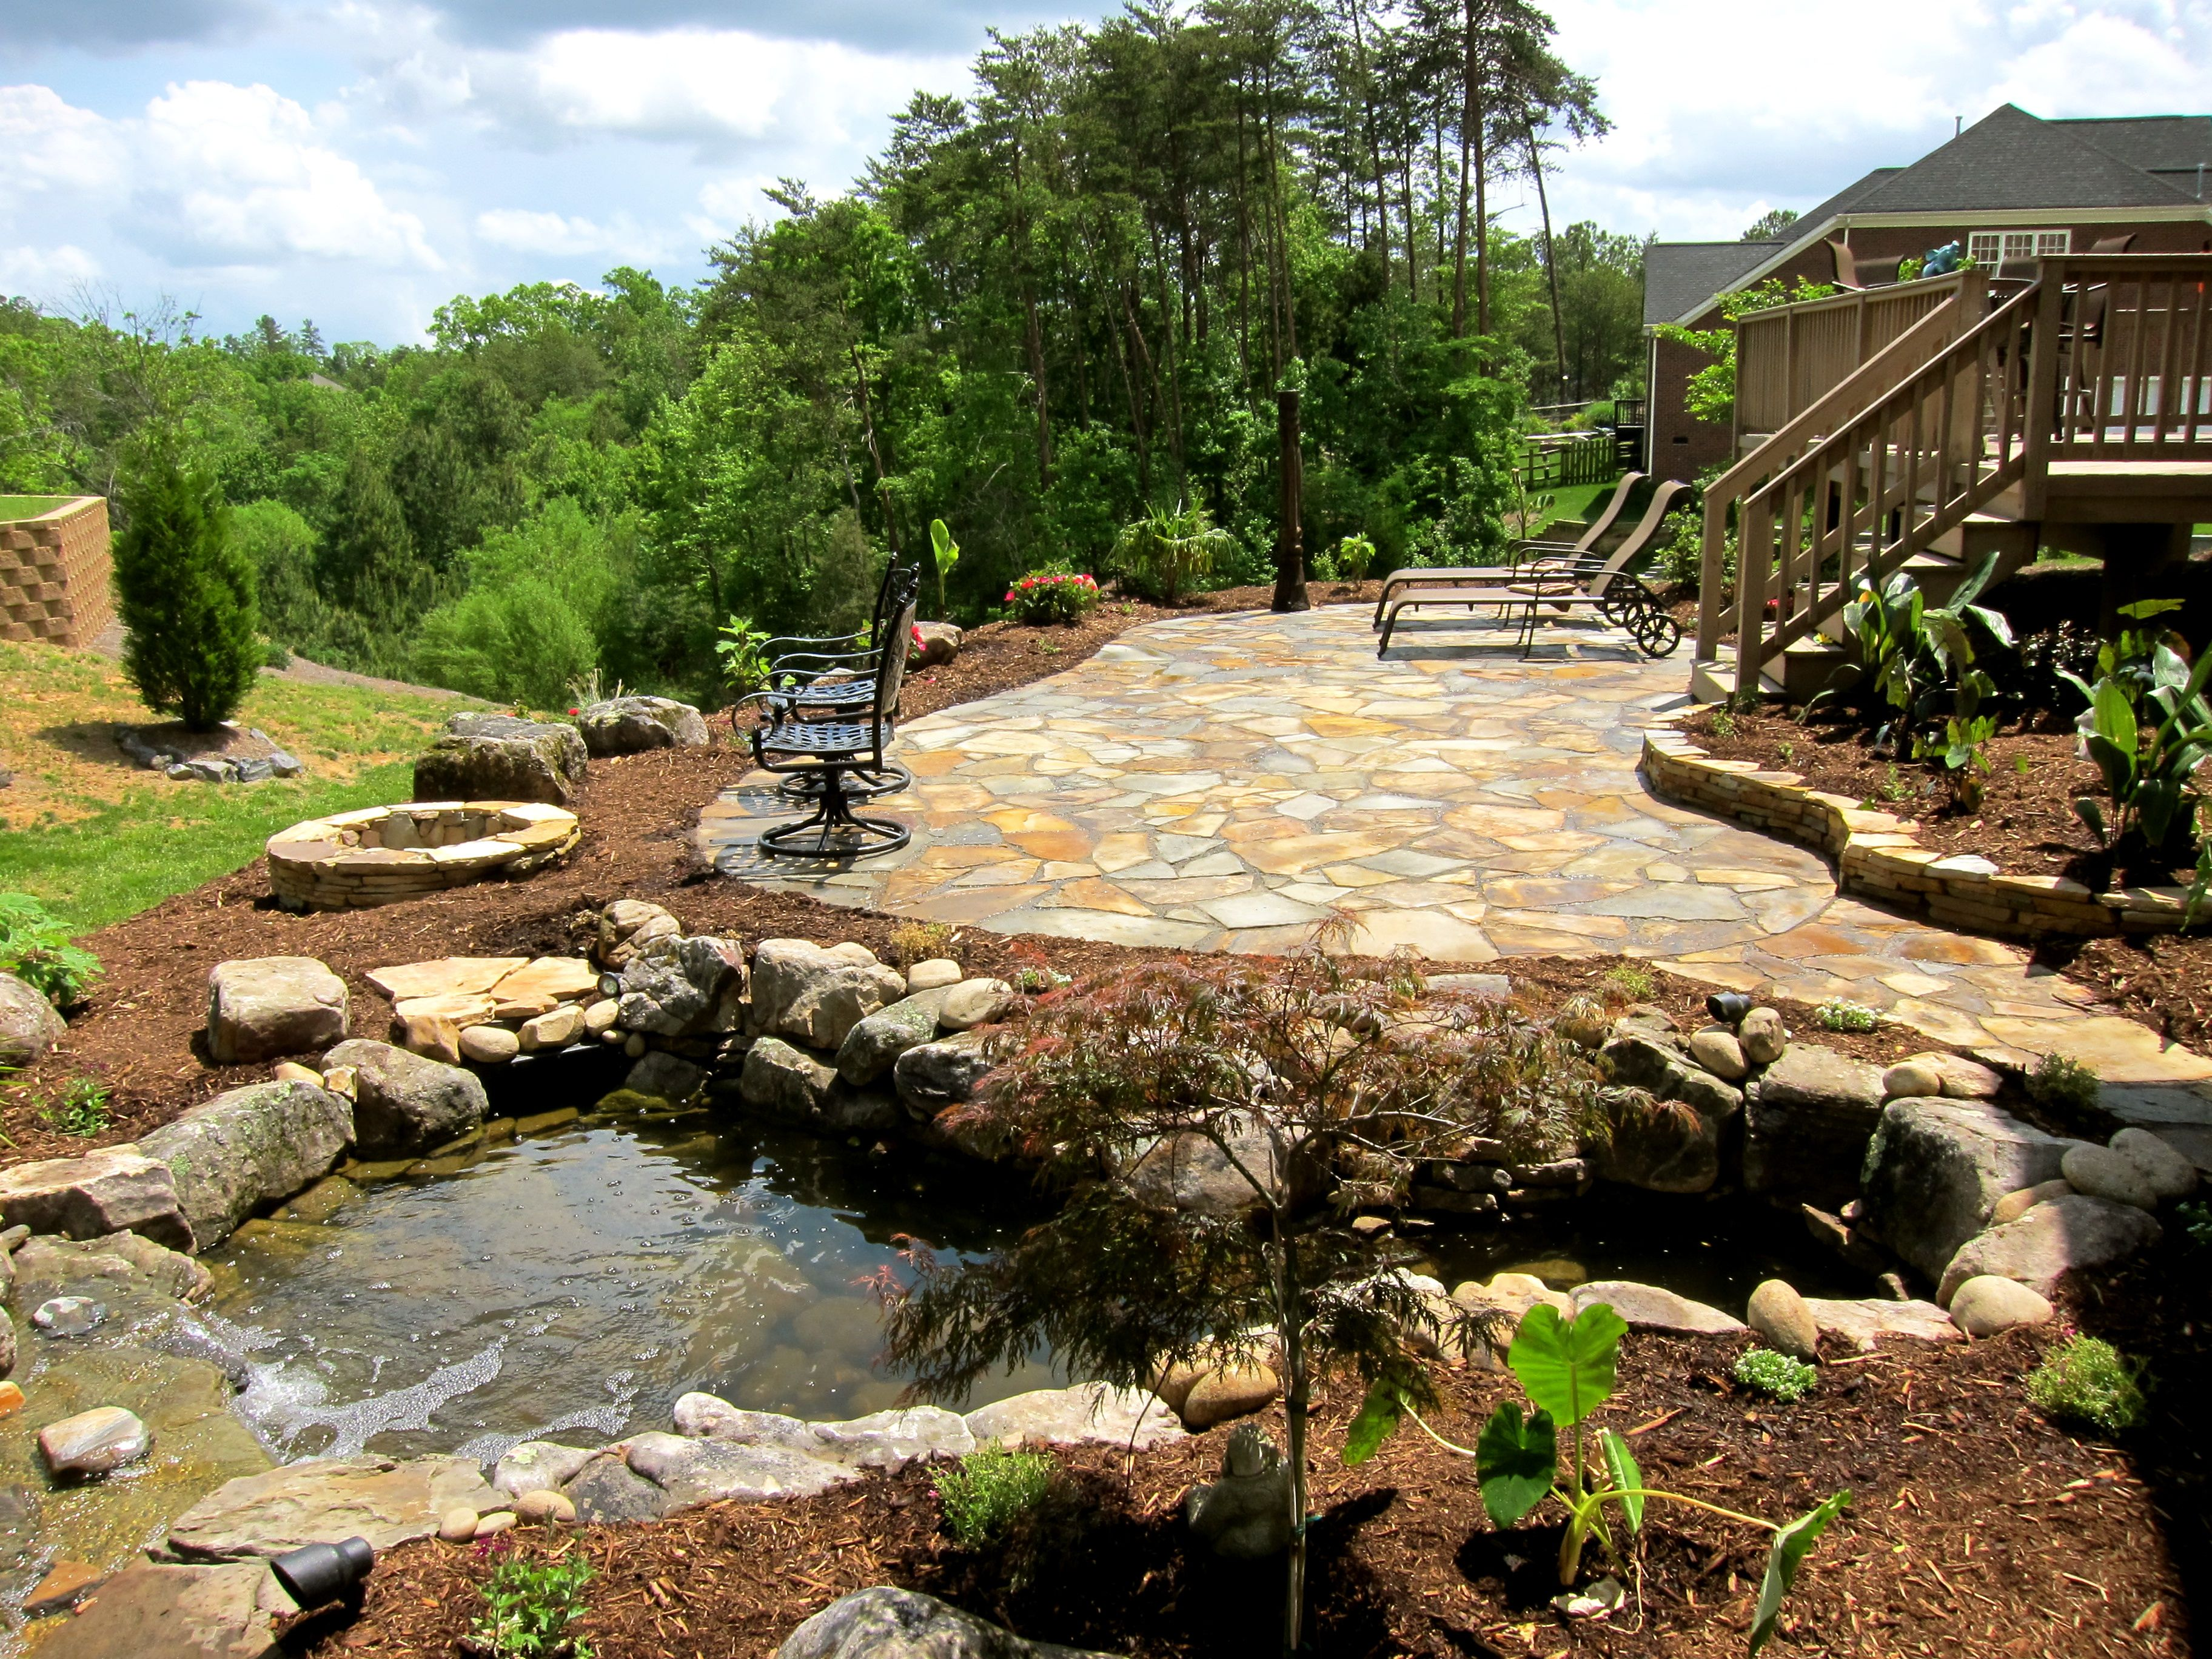 Our Backyard Outdoor Living Space Design By All Natural Streams Landscaping Backyard Landscape Design Fountains Backyard